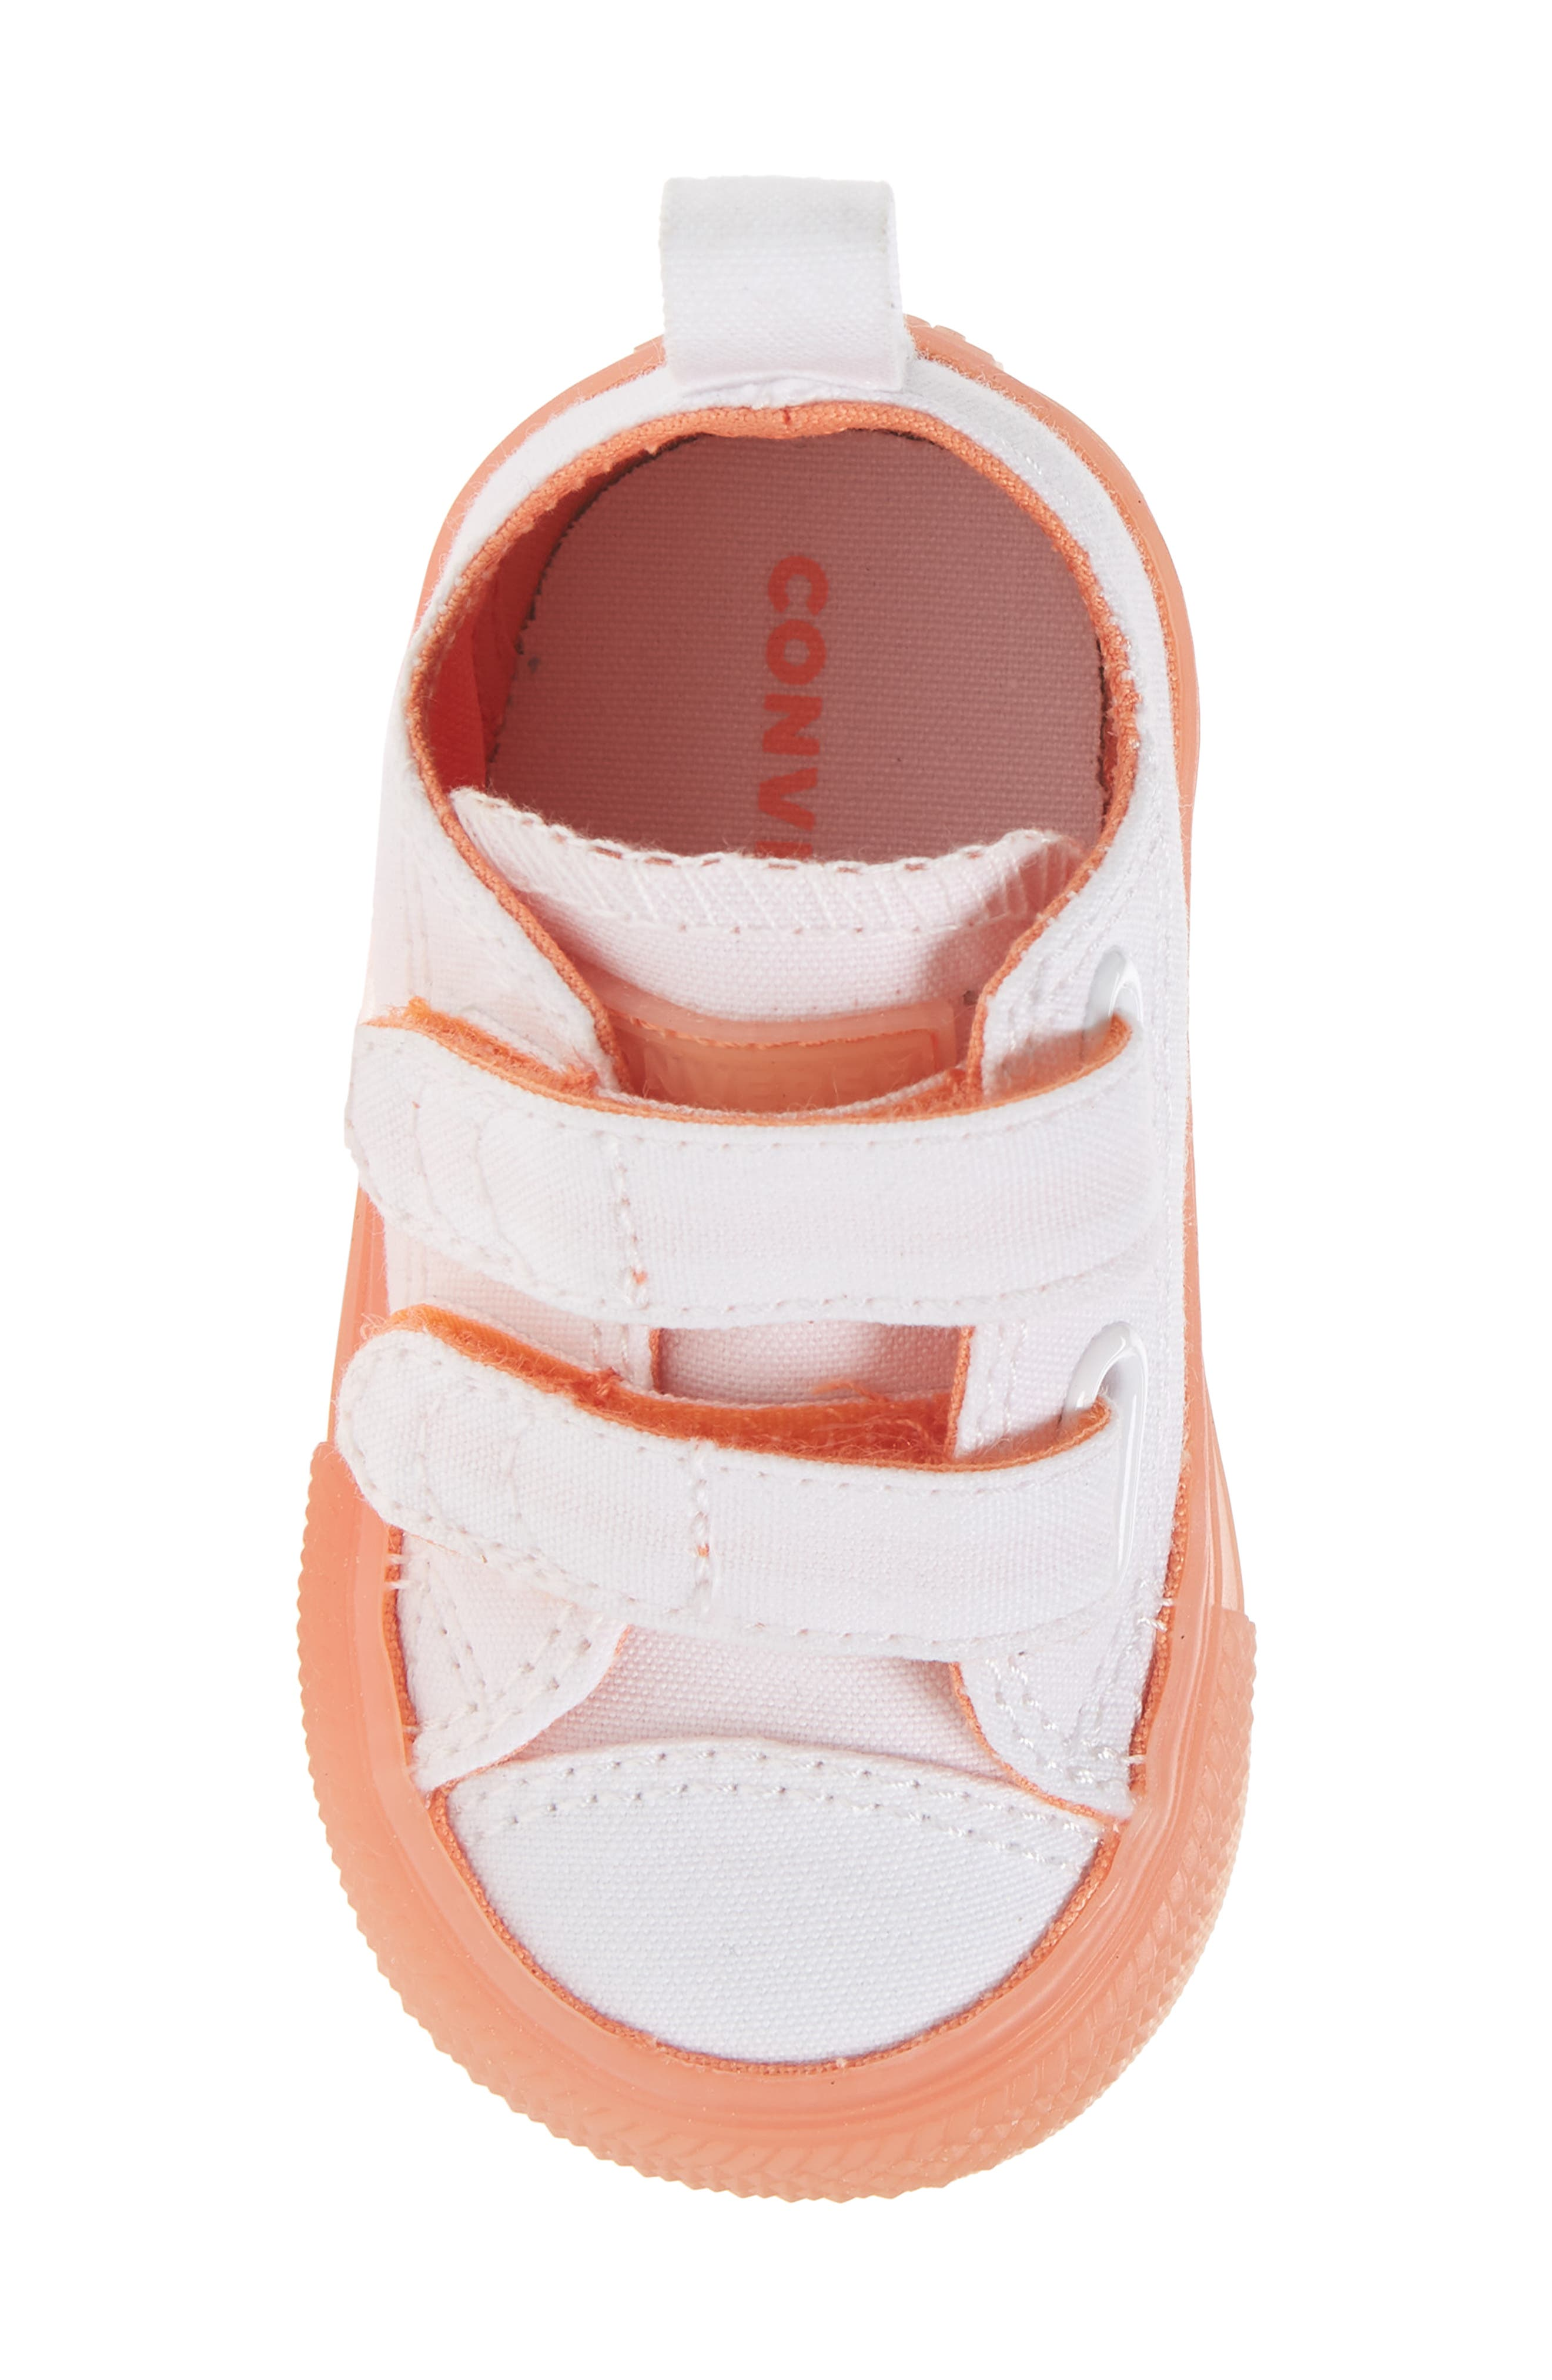 Chuck Taylor<sup>®</sup> All Star<sup>®</sup> Jelly Sneaker,                             Alternate thumbnail 5, color,                             Orange